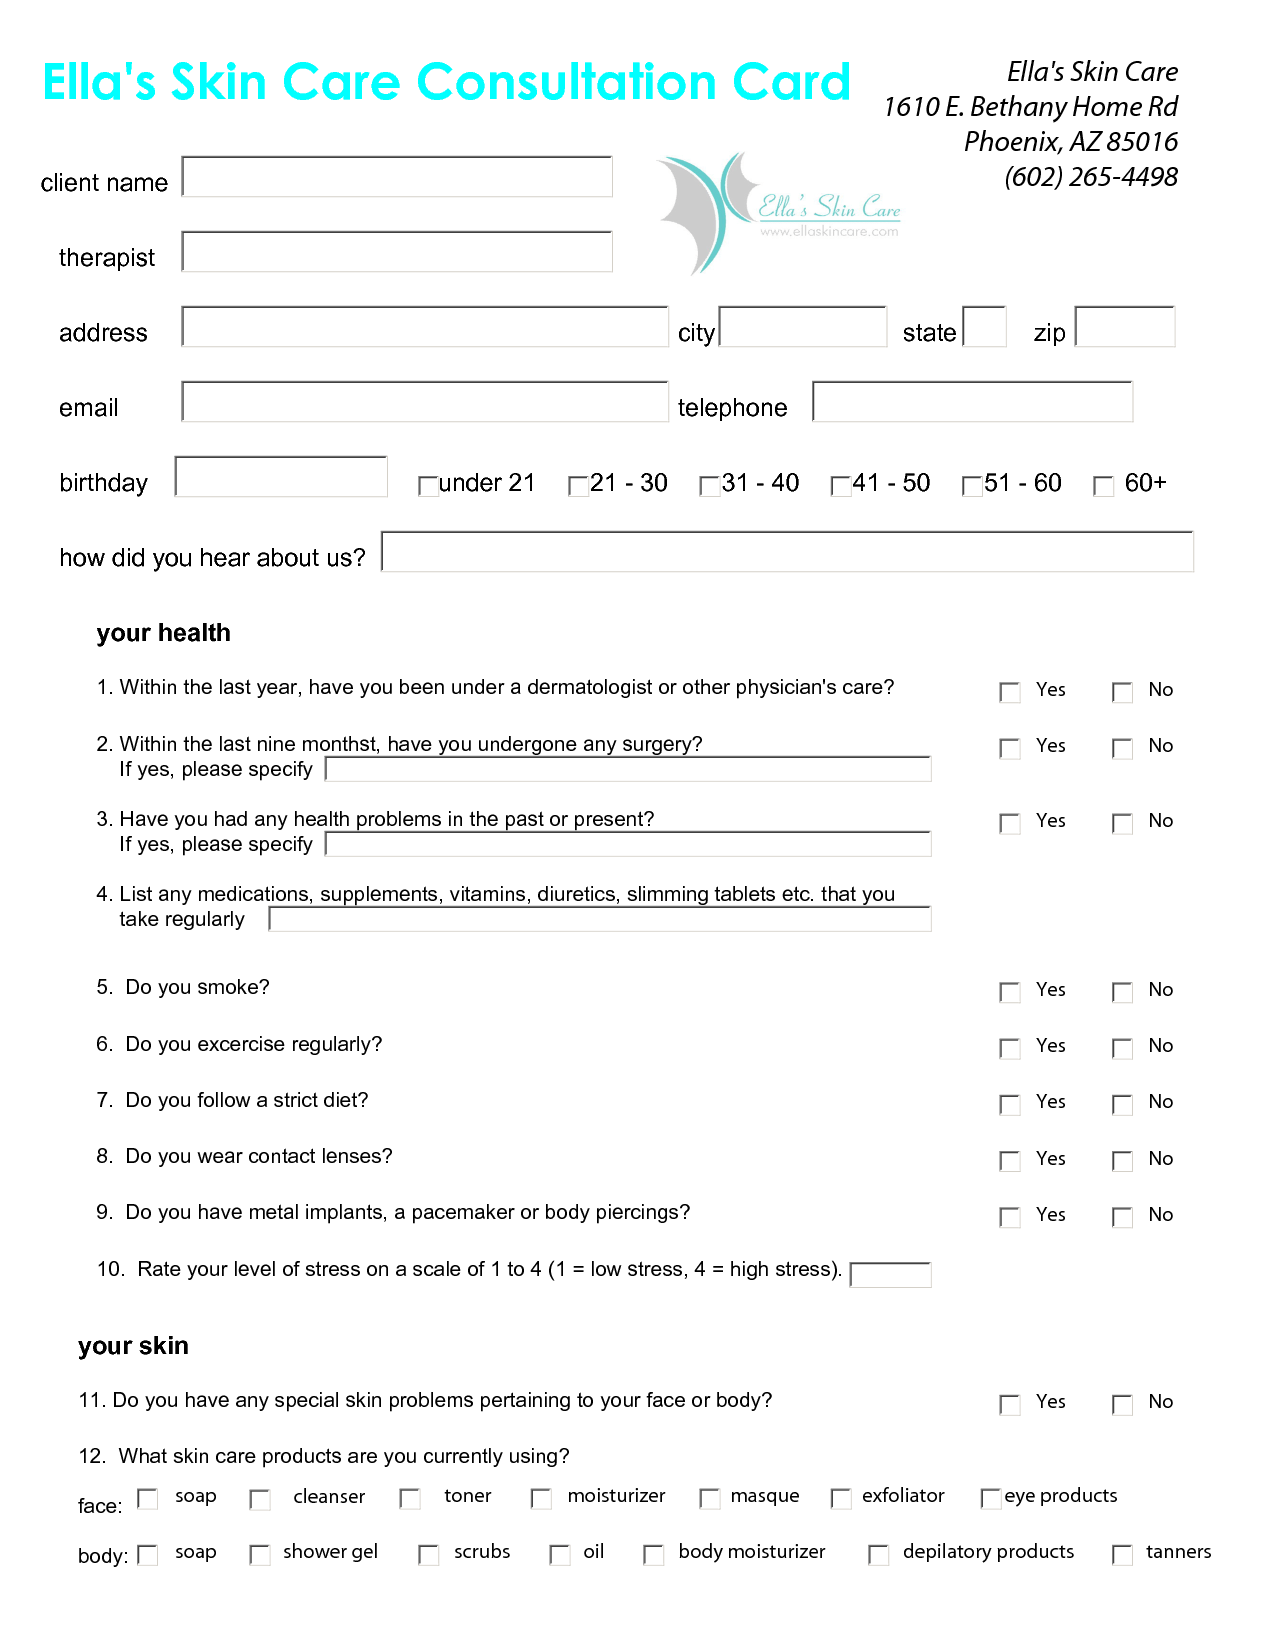 Skin Care Client Consultation Form Success